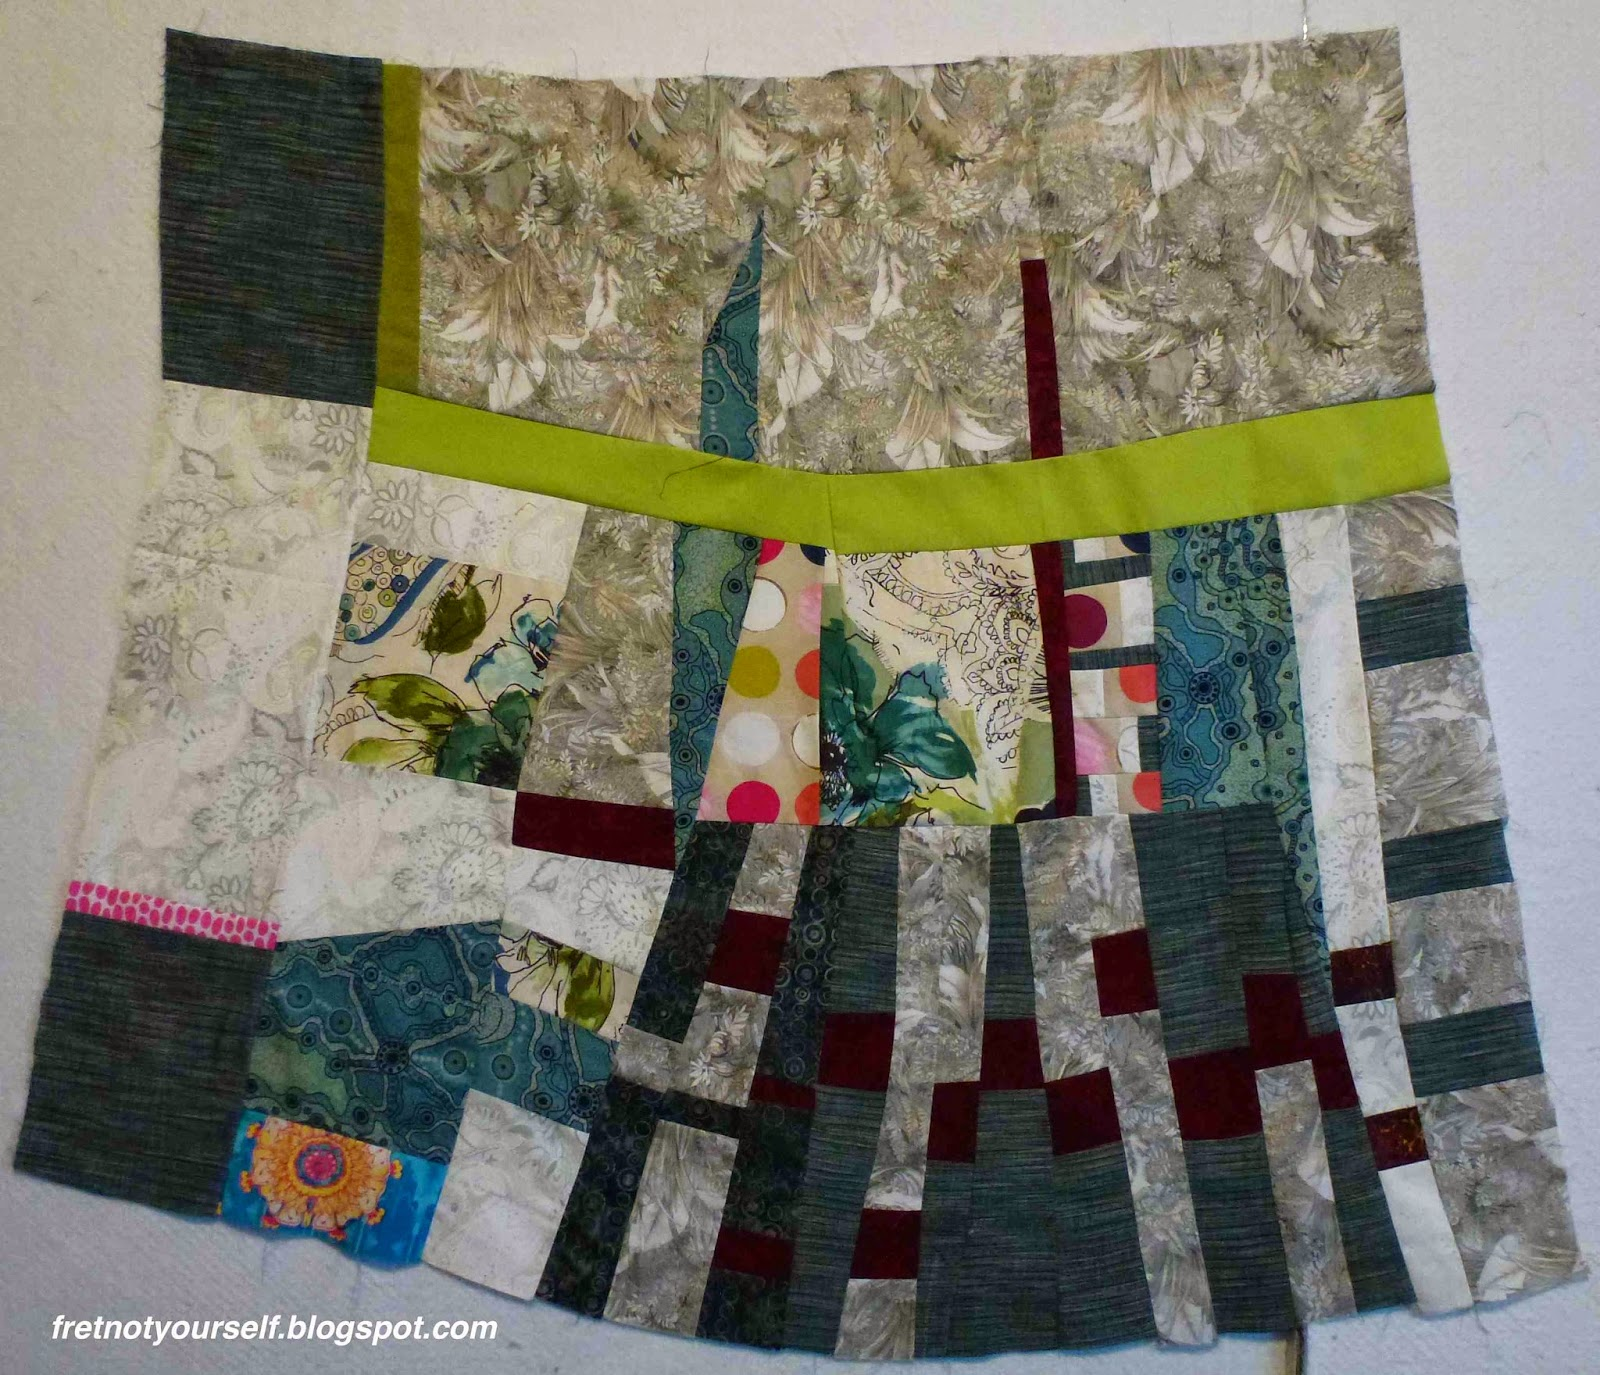 Dark blue, dark red, grey and green fabrics were used to make this improvisational quilt.